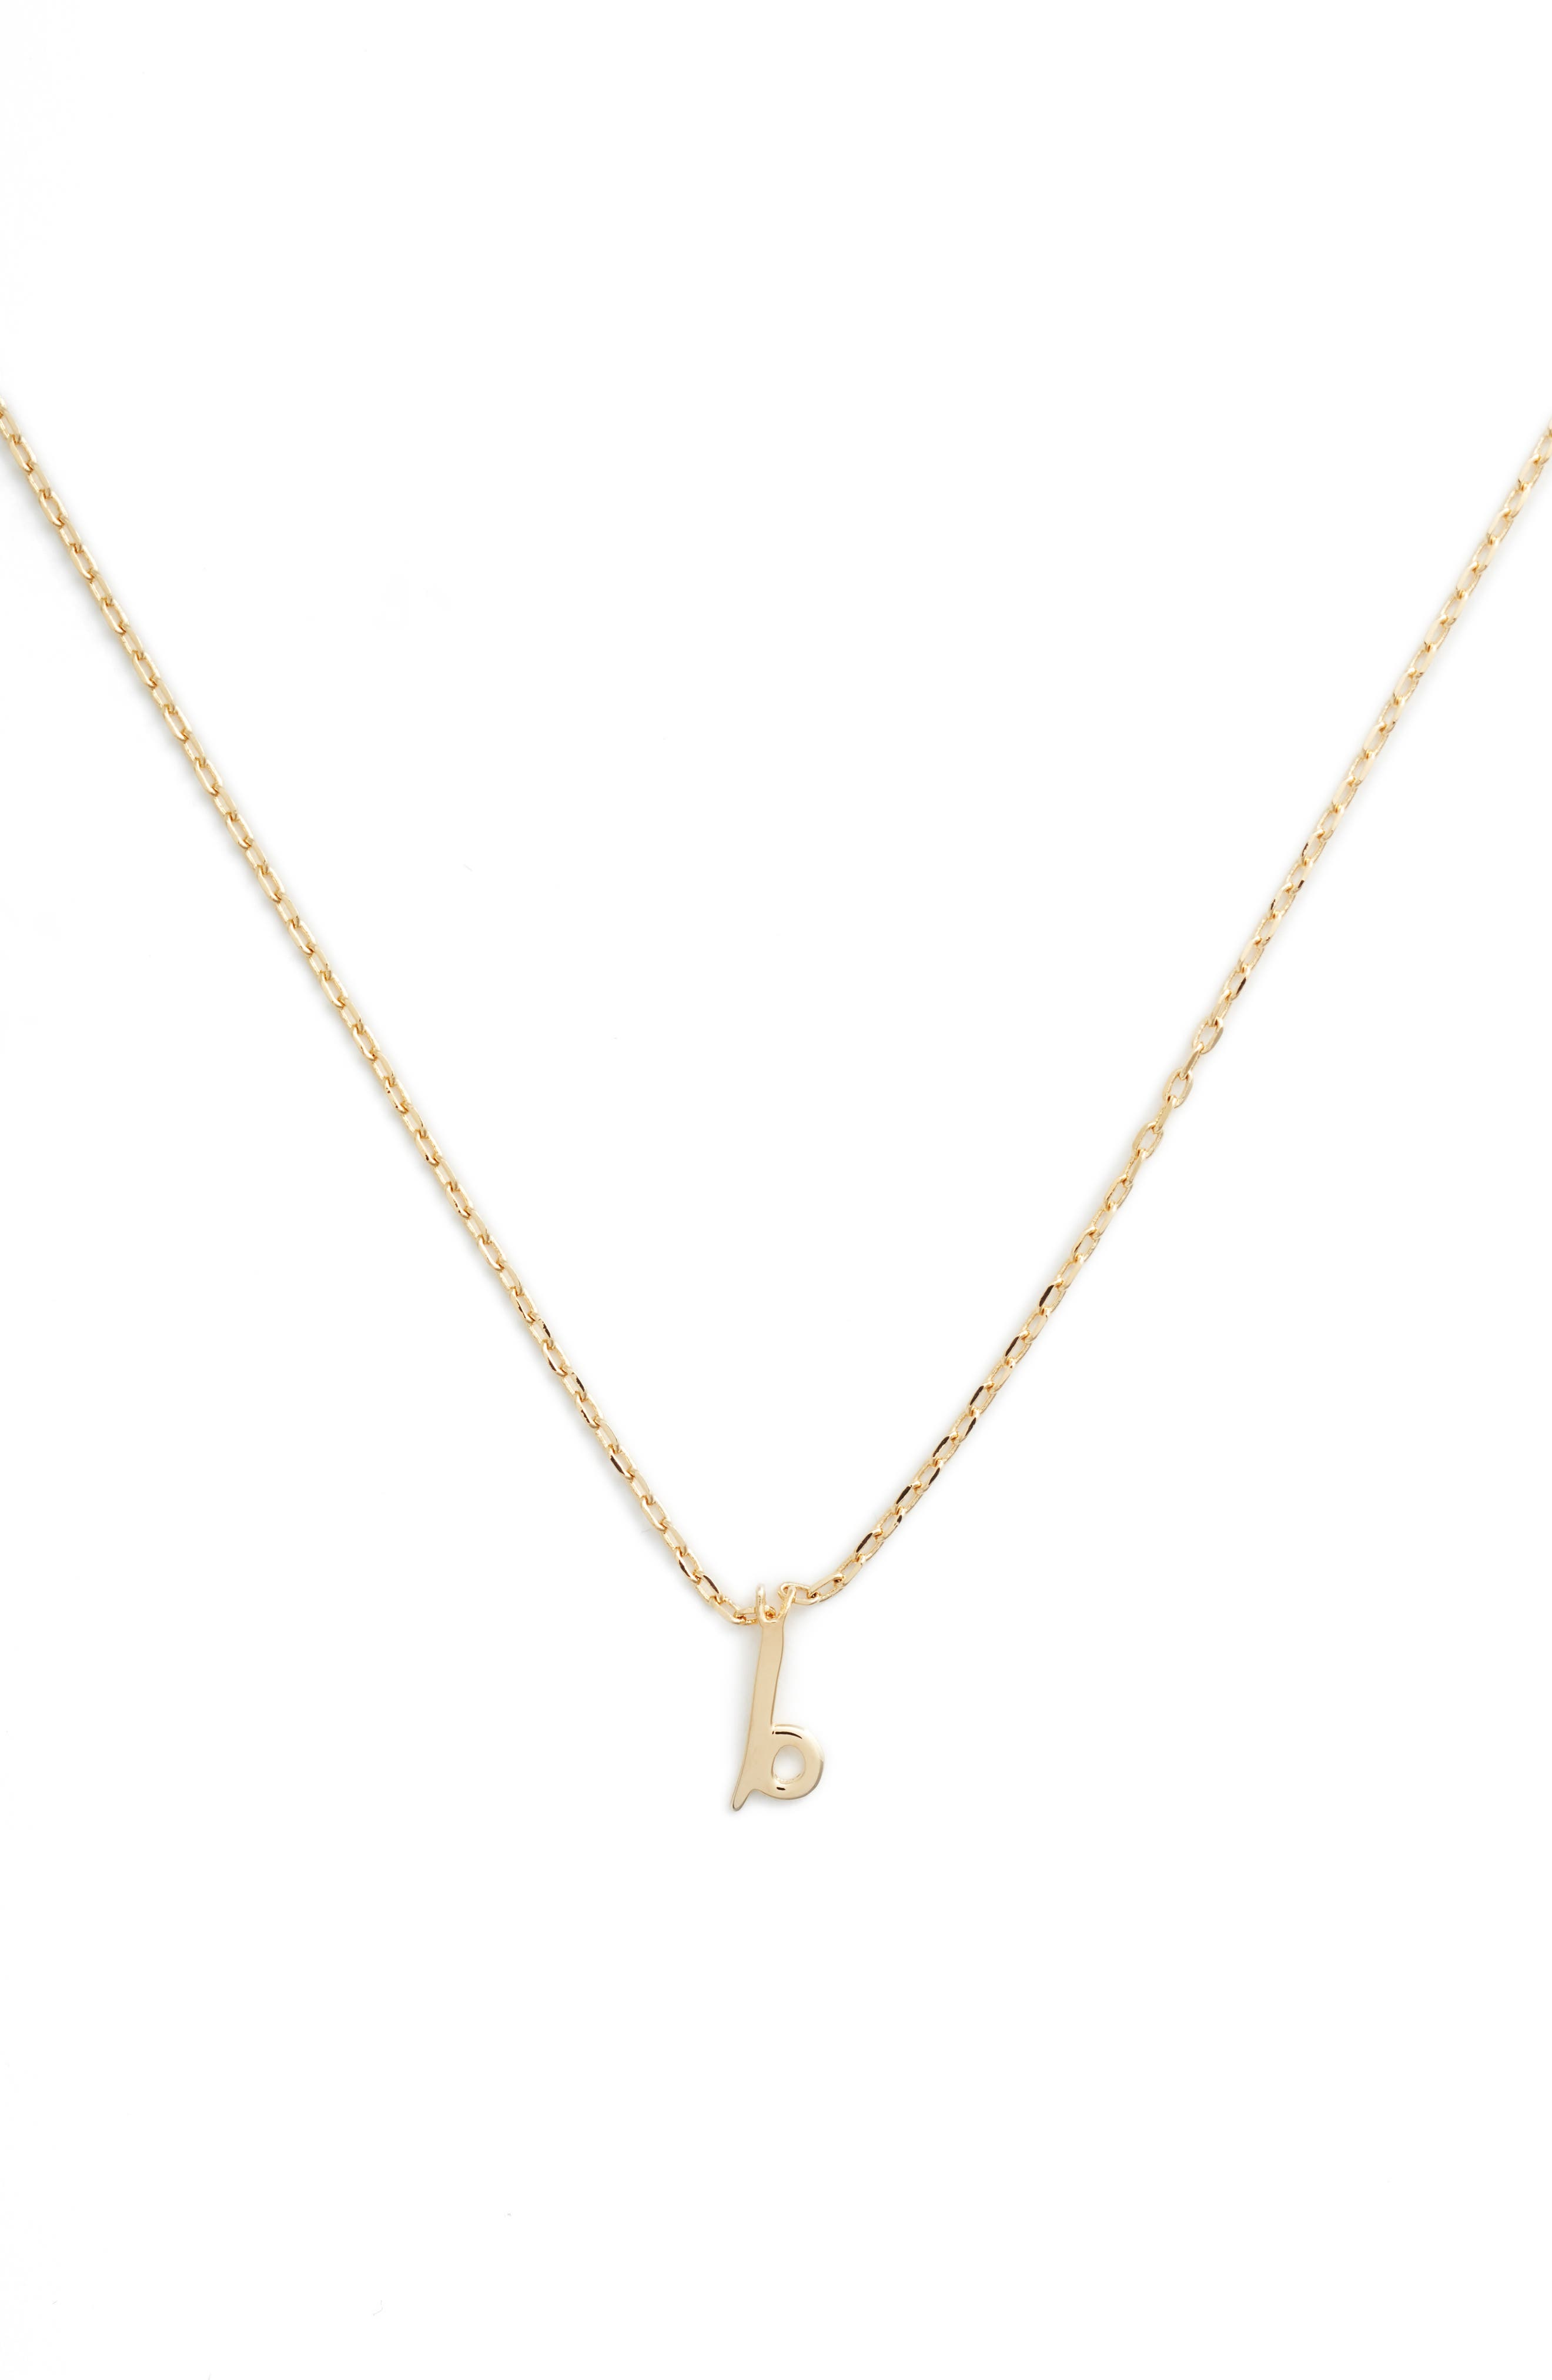 KATE SPADE NEW YORK, kate spade one in a million initial pendant necklace, Main thumbnail 1, color, B-GOLD